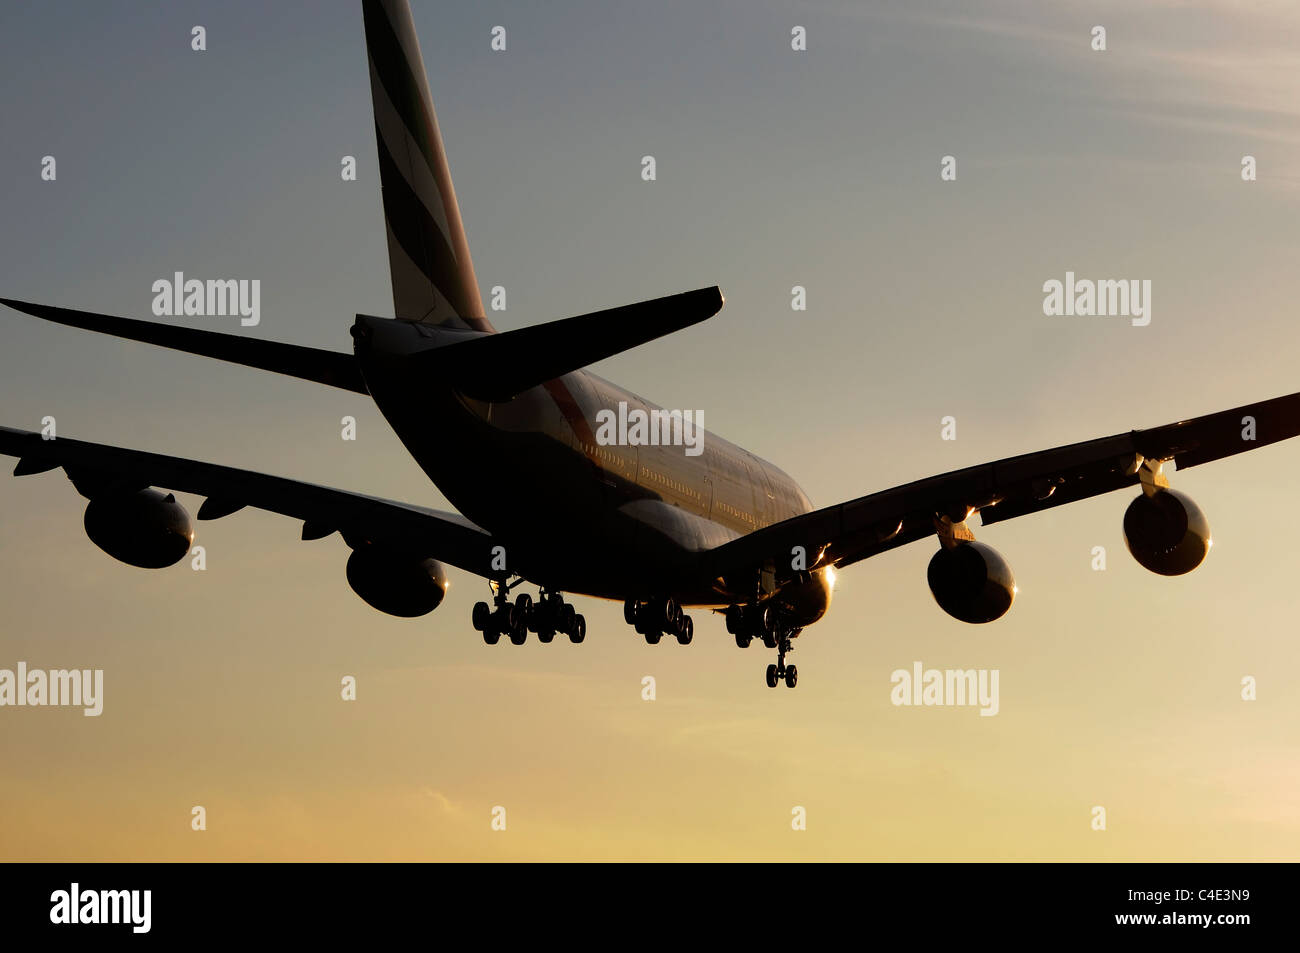 The Airbus A380 landing in the sunset - Stock Image